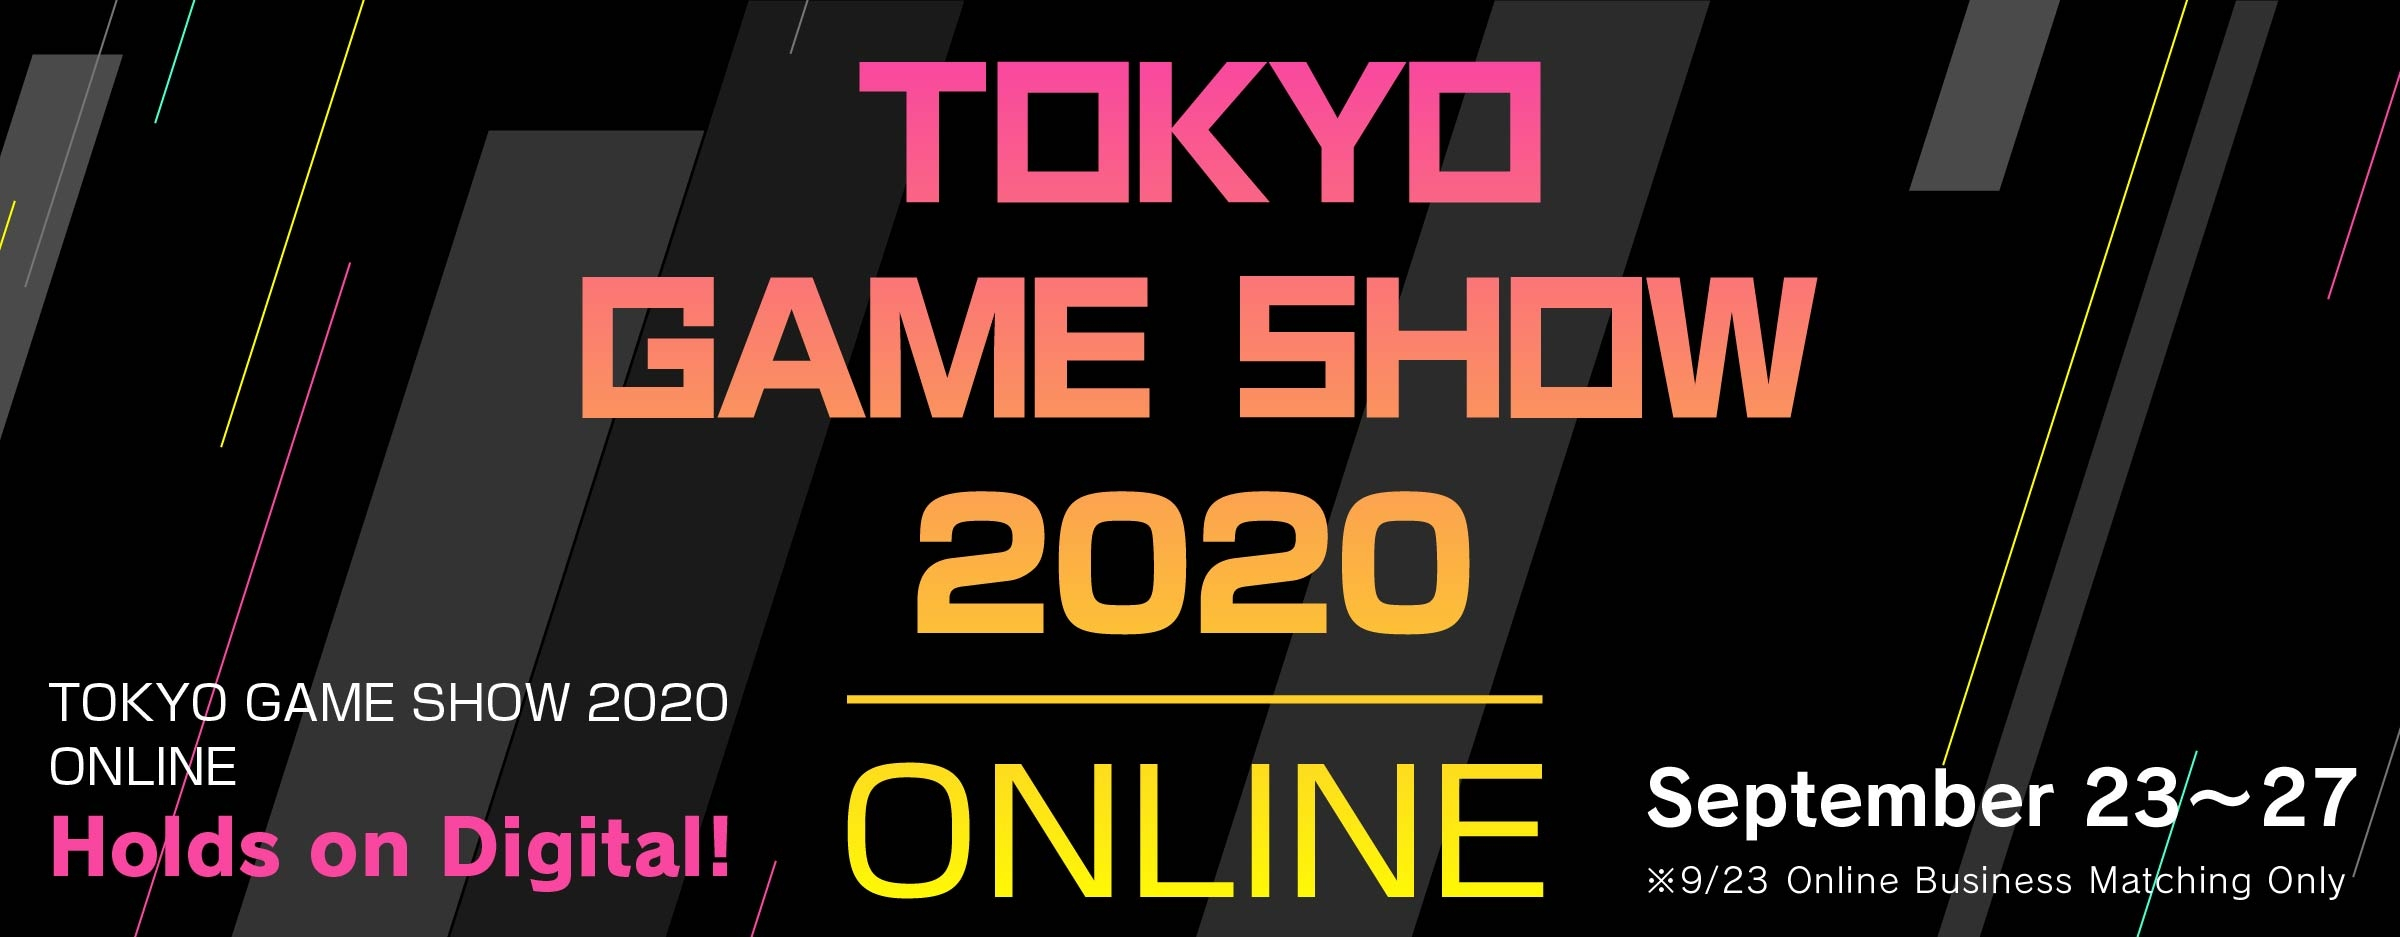 Tokyo Game Show 2020 Online Official Event Dates Announced For Late September